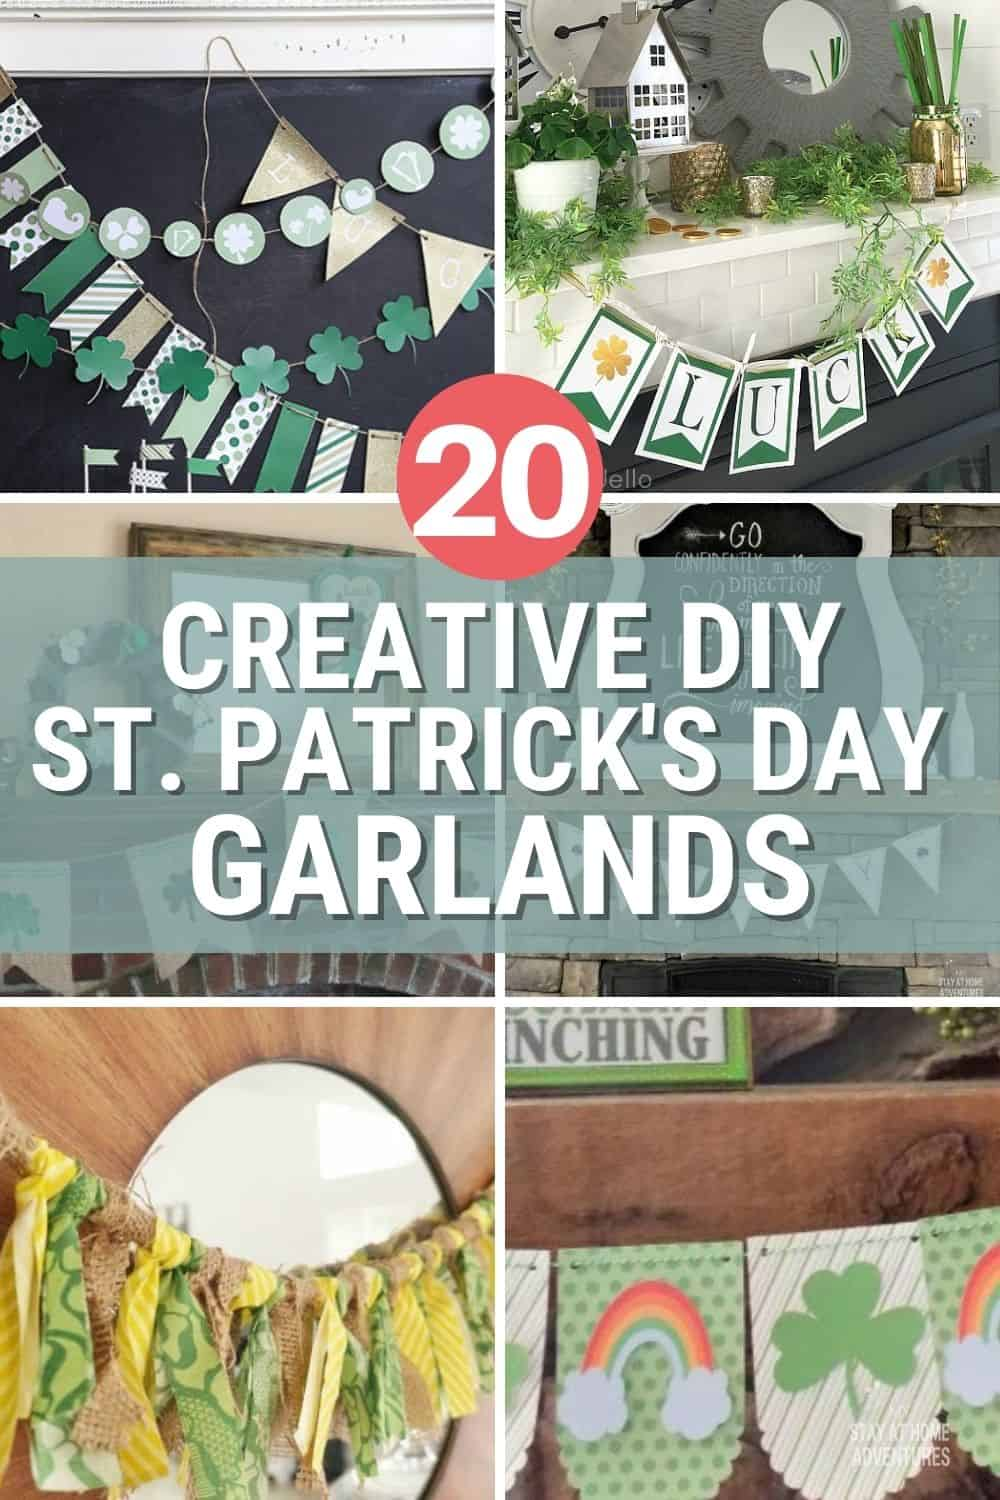 St Patrick's Day is just around the corner, and if you are looking for a DIY Garland, we got 20 Creative DIY St. Patrick's Day Garlands. via @mystayathome